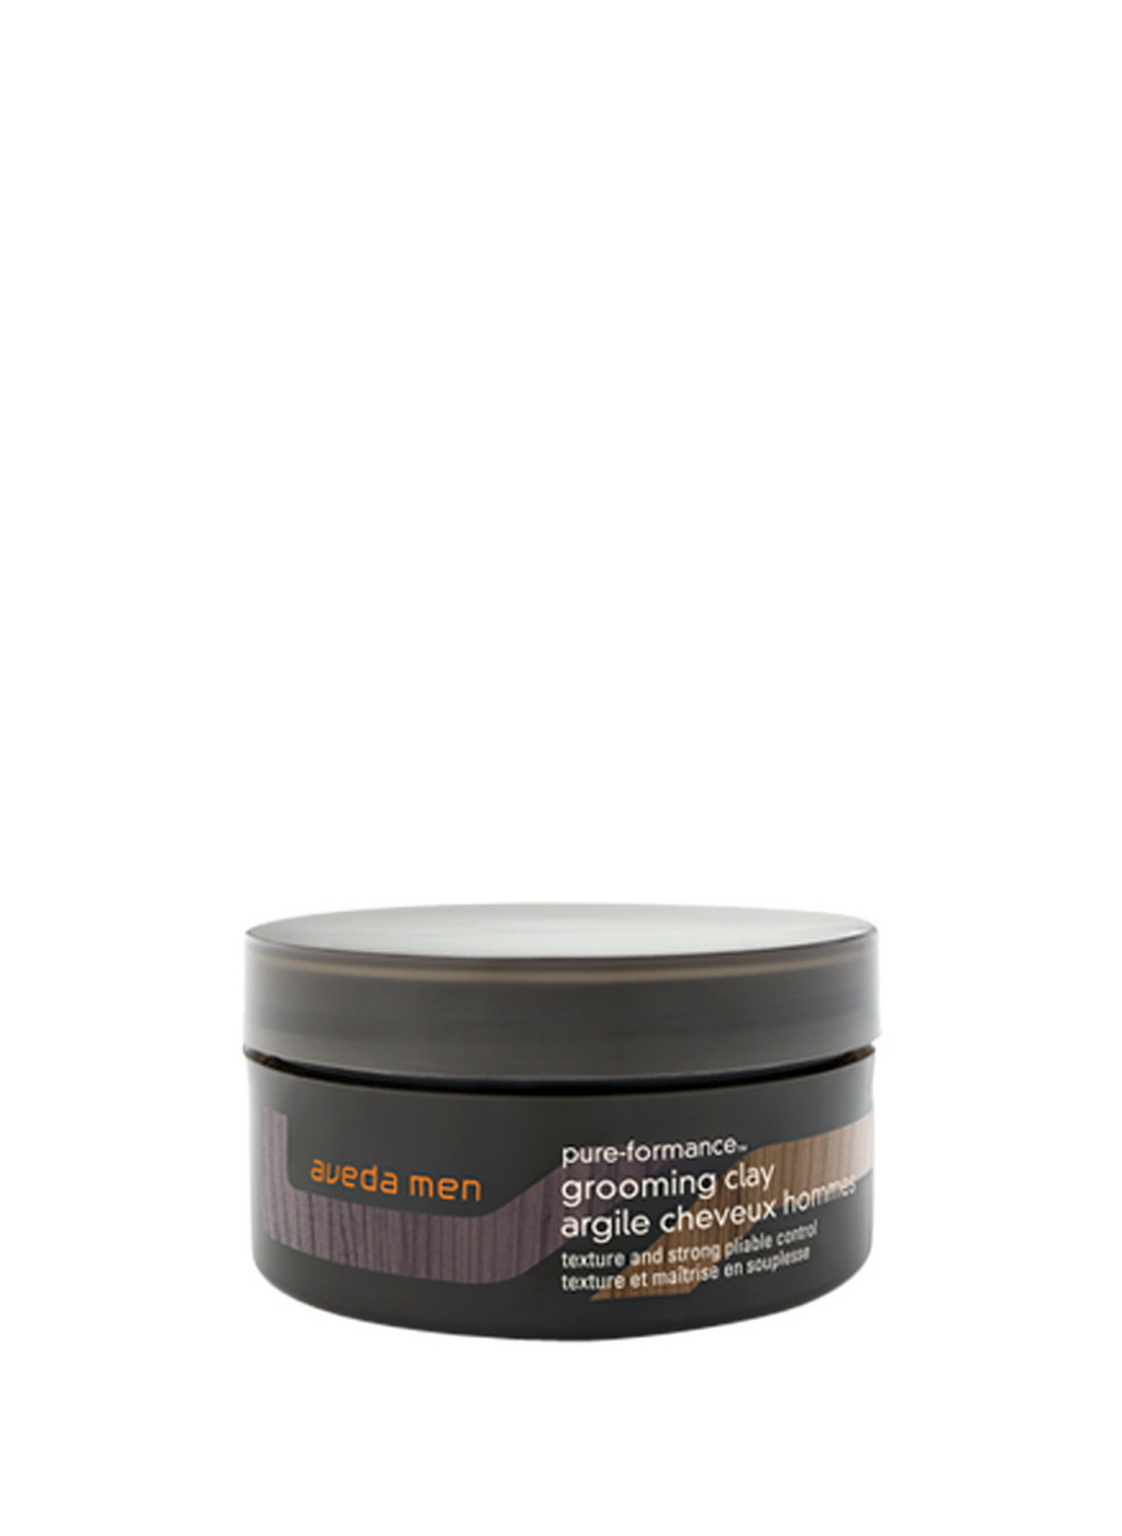 Image of Aveda Aveda Men Pure-Formance Grooming Clay 75 ml